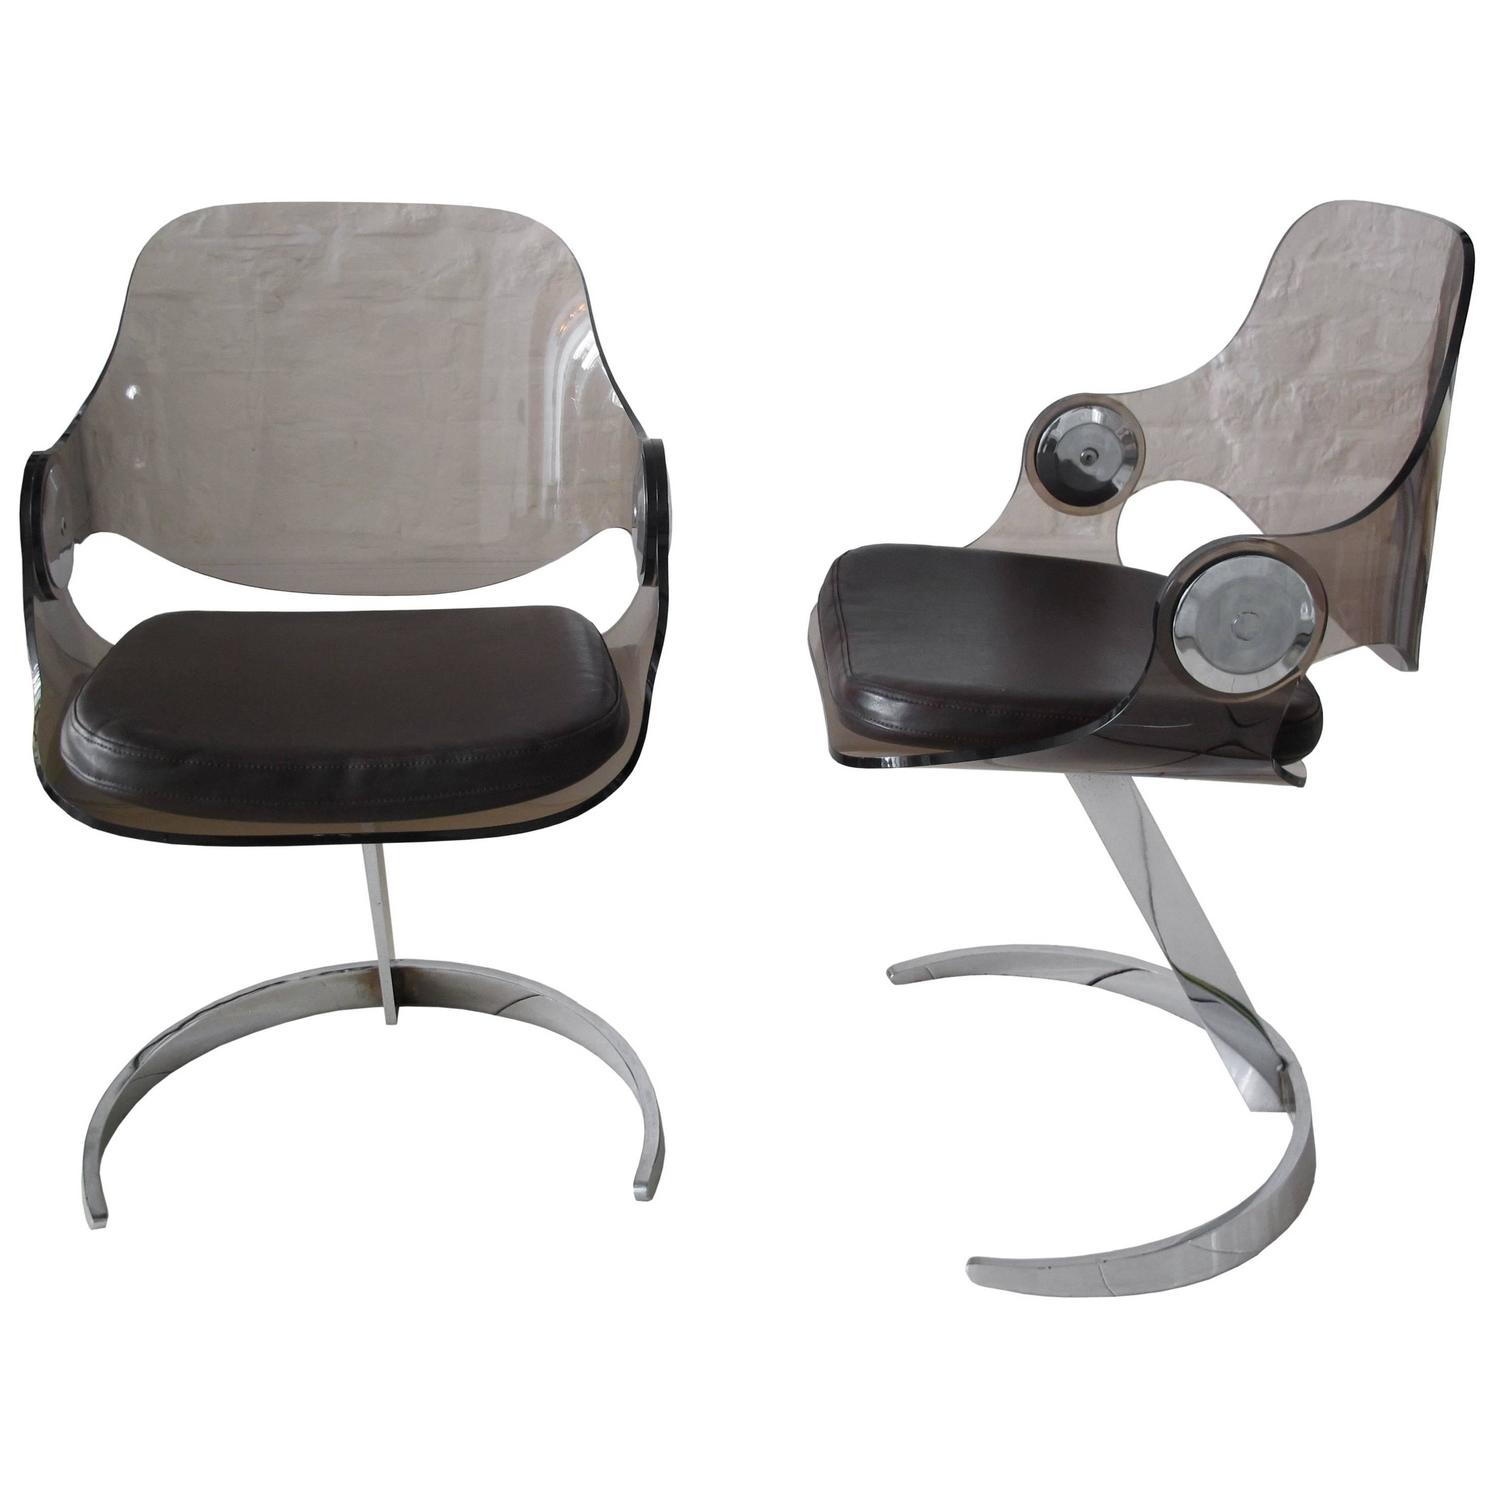 pair of lucite chairs by boris tabacoff for sale at 1stdibs